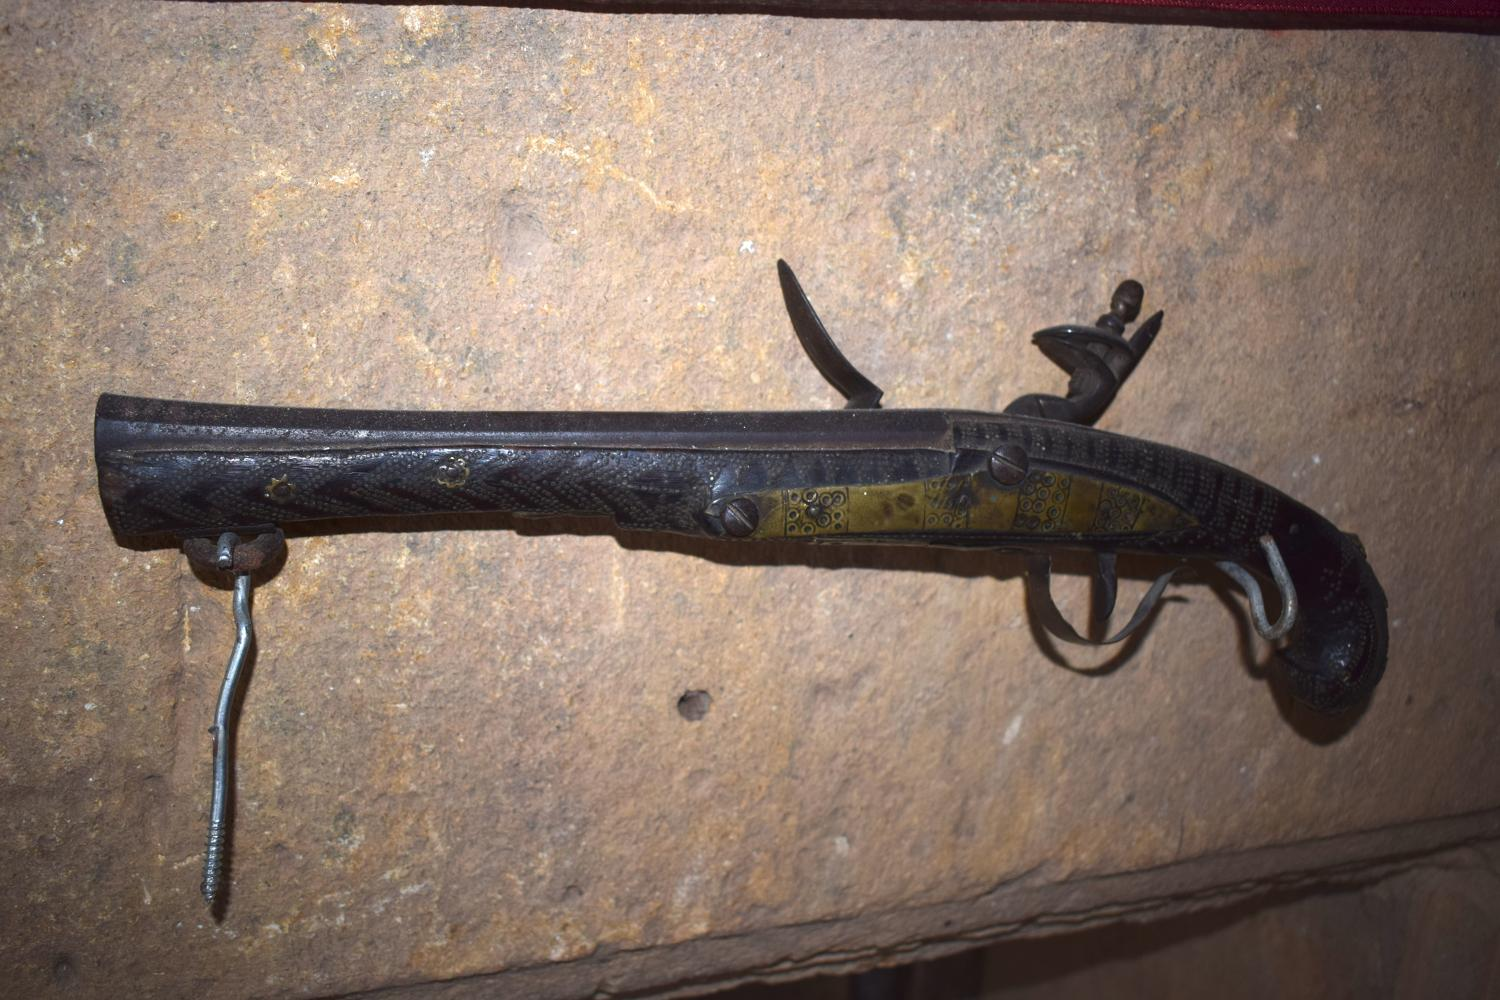 A Turkish flintlock pistol